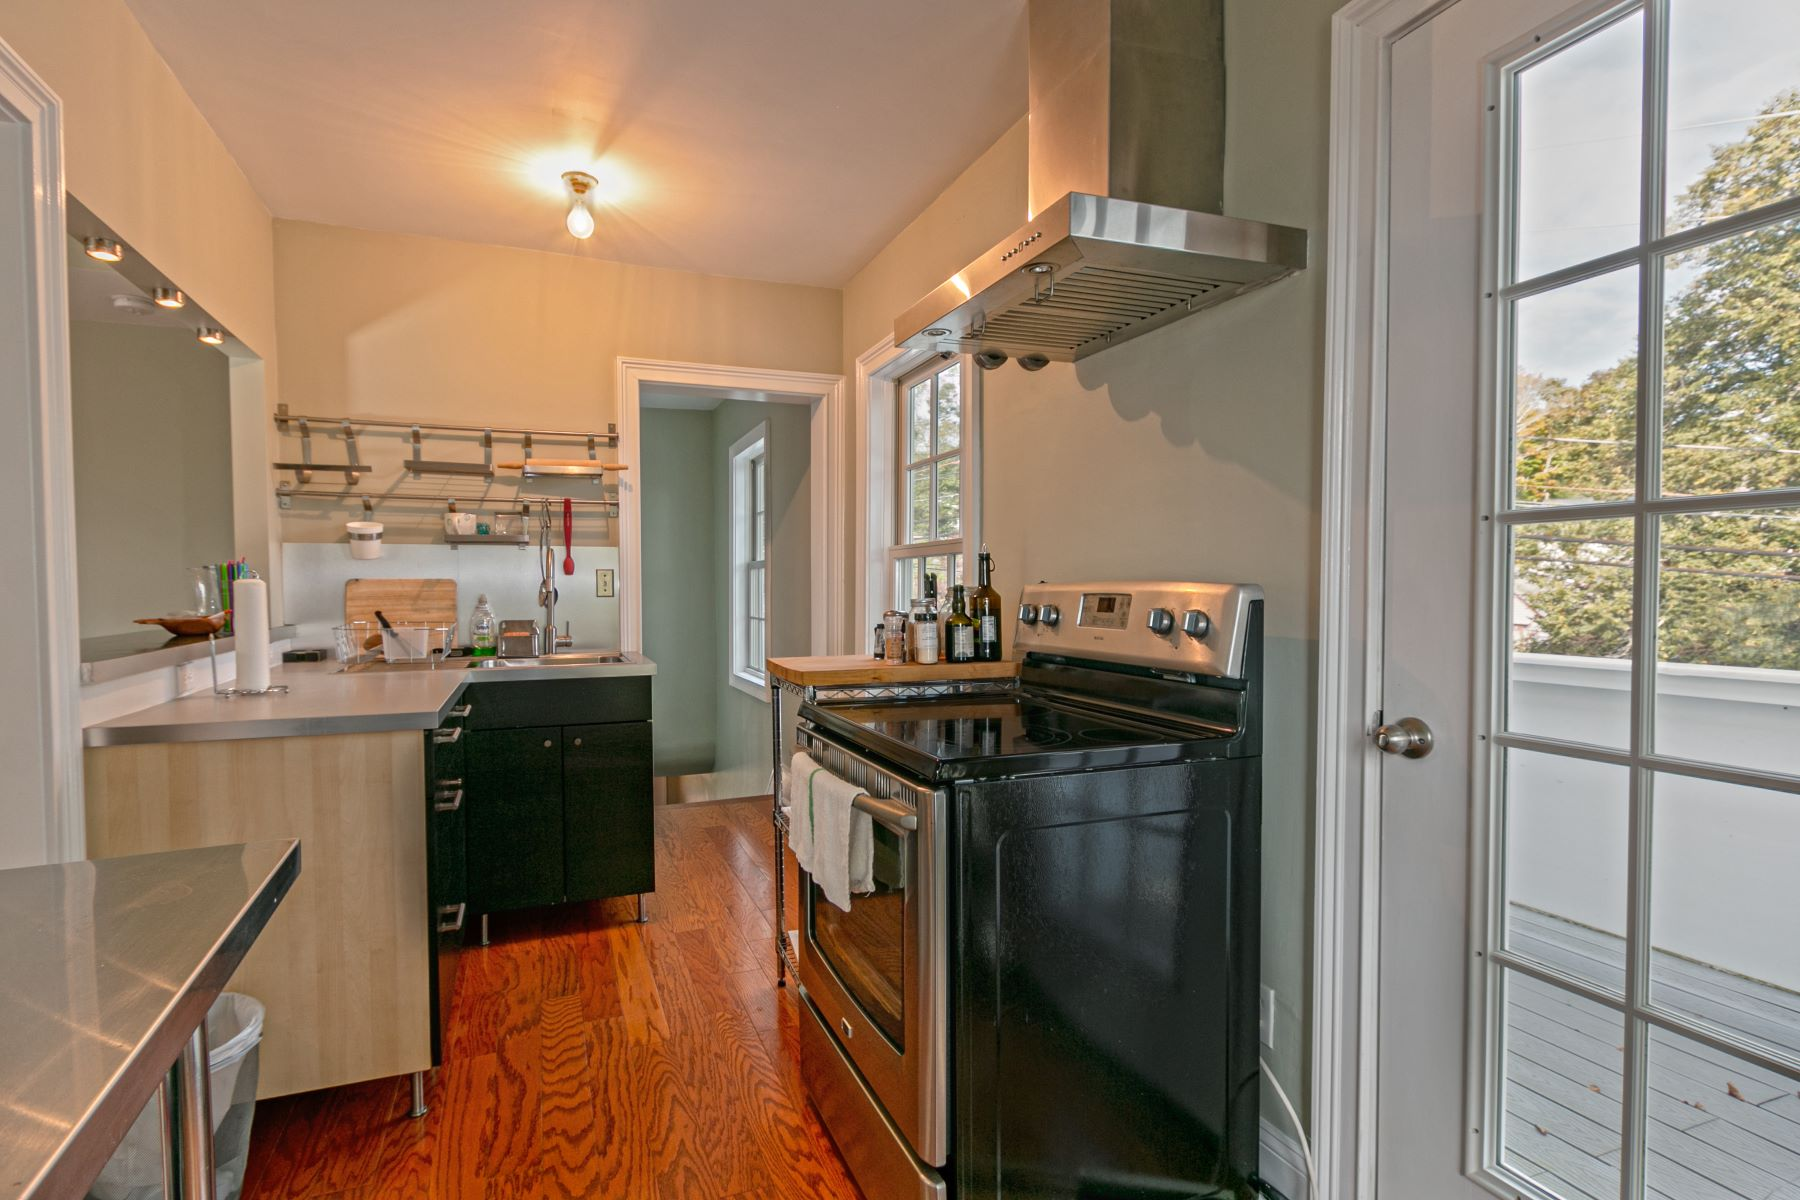 Additional photo for property listing at 3 Fort Rachel Place Groton, Connecticut 06355 Estados Unidos